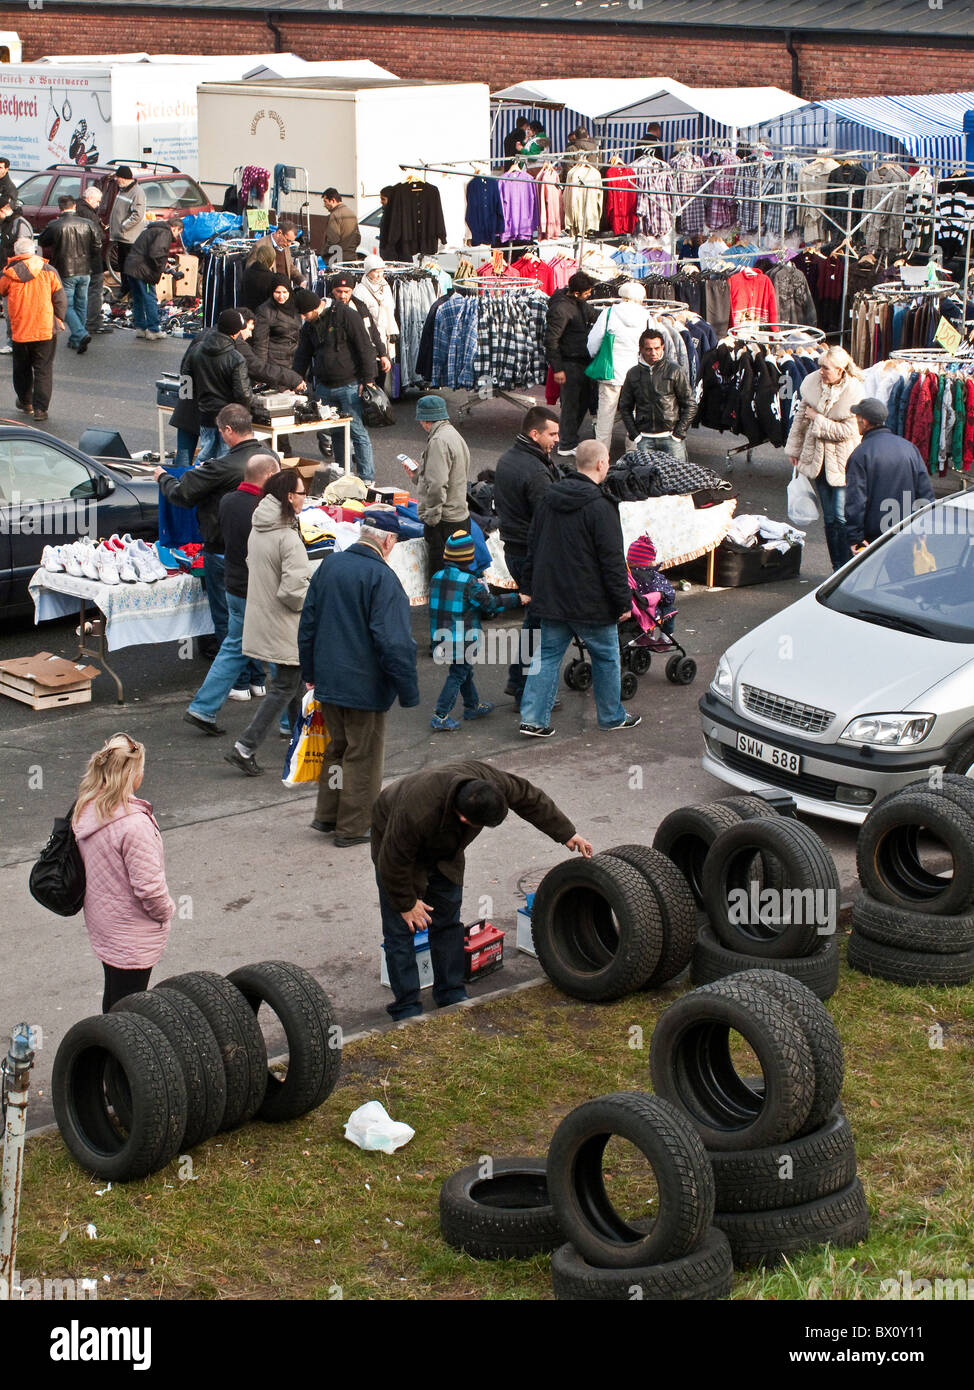 Second hand tires displayed at crowded weekend flea-market in outskirt of Gothenburg, Sweden - Stock Image